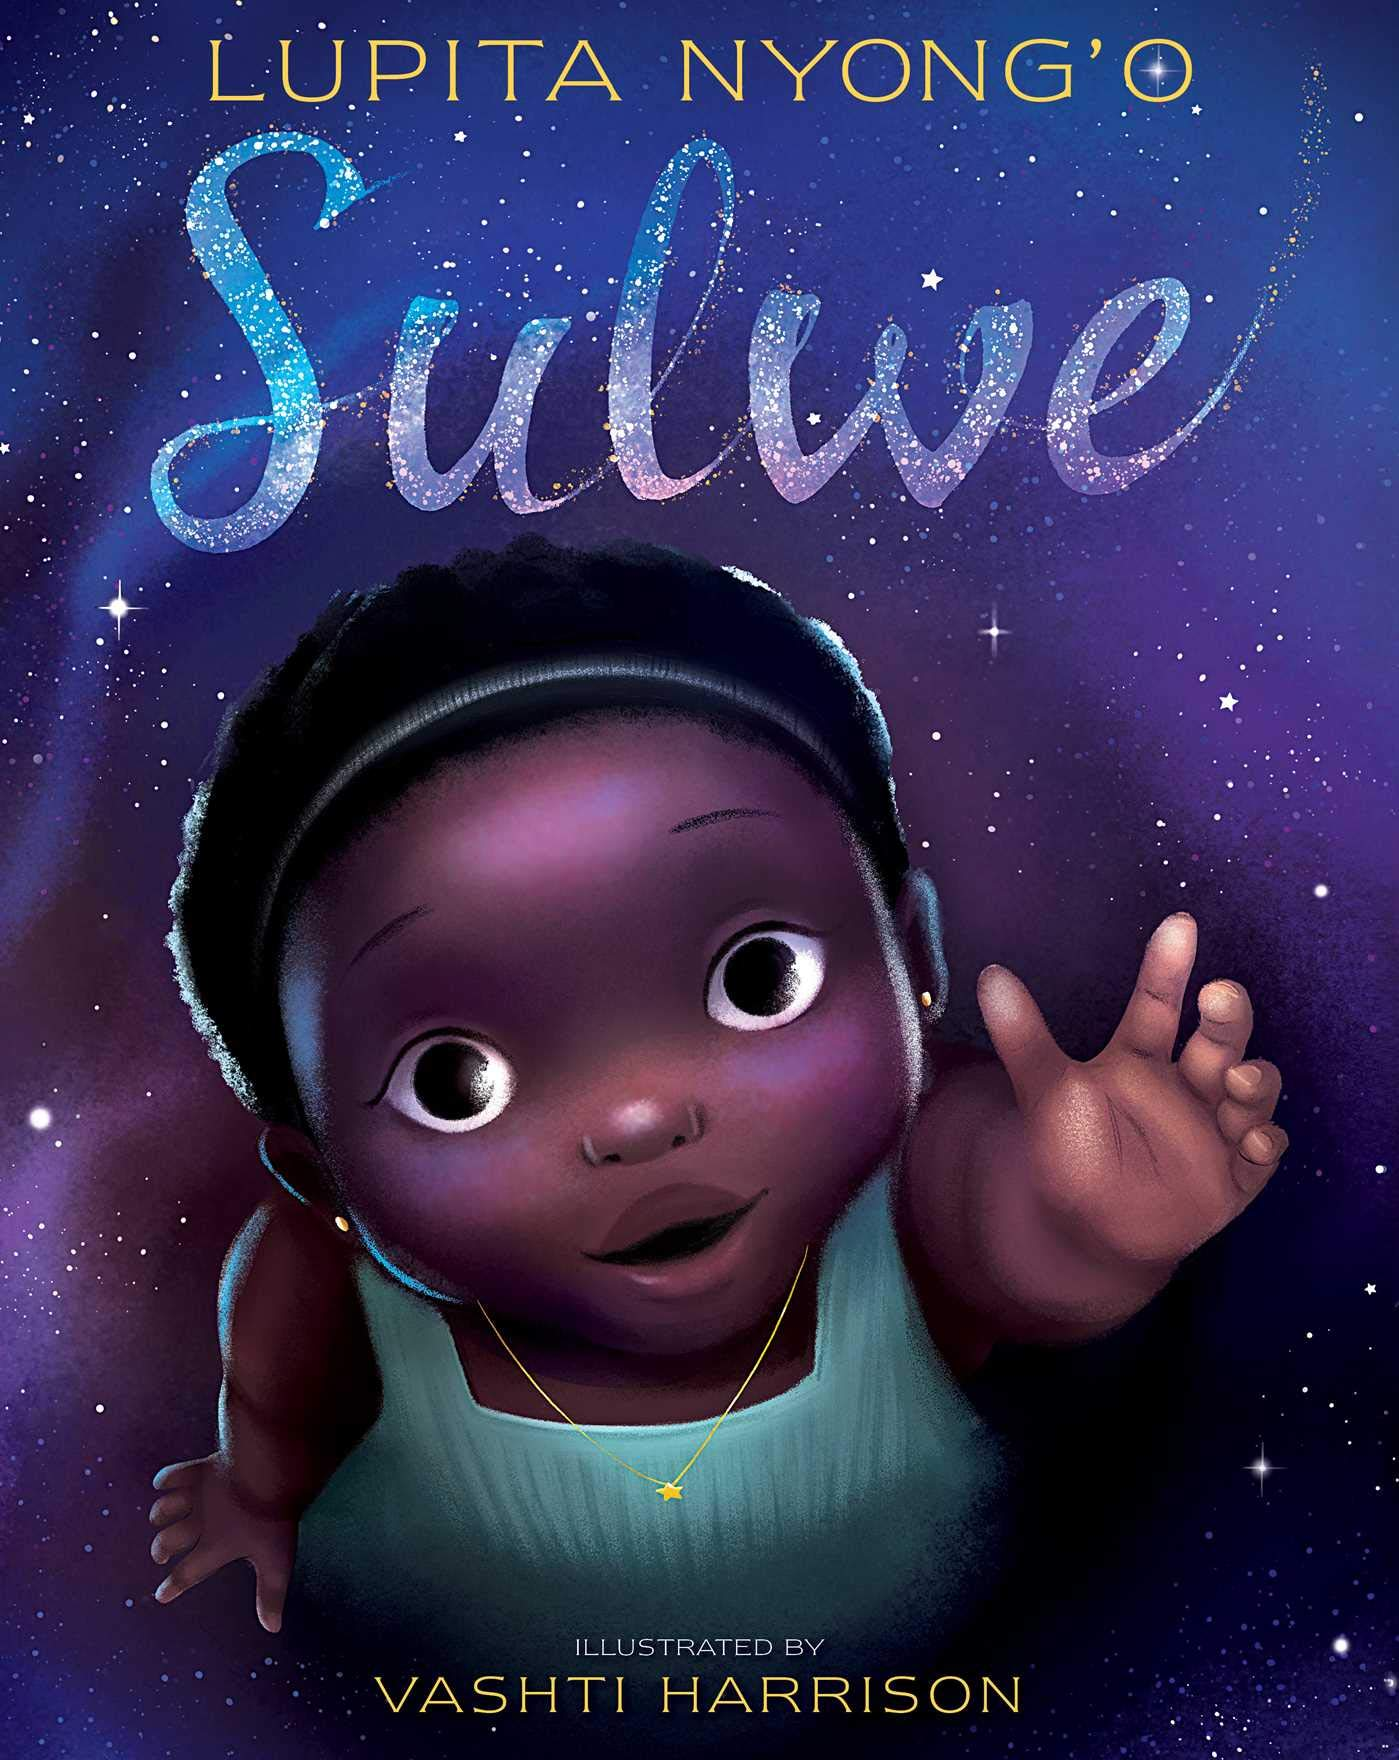 Lupita Nyong Shares Light On Racism & Colourism Ahead Of Her New Book 'Sulwe'